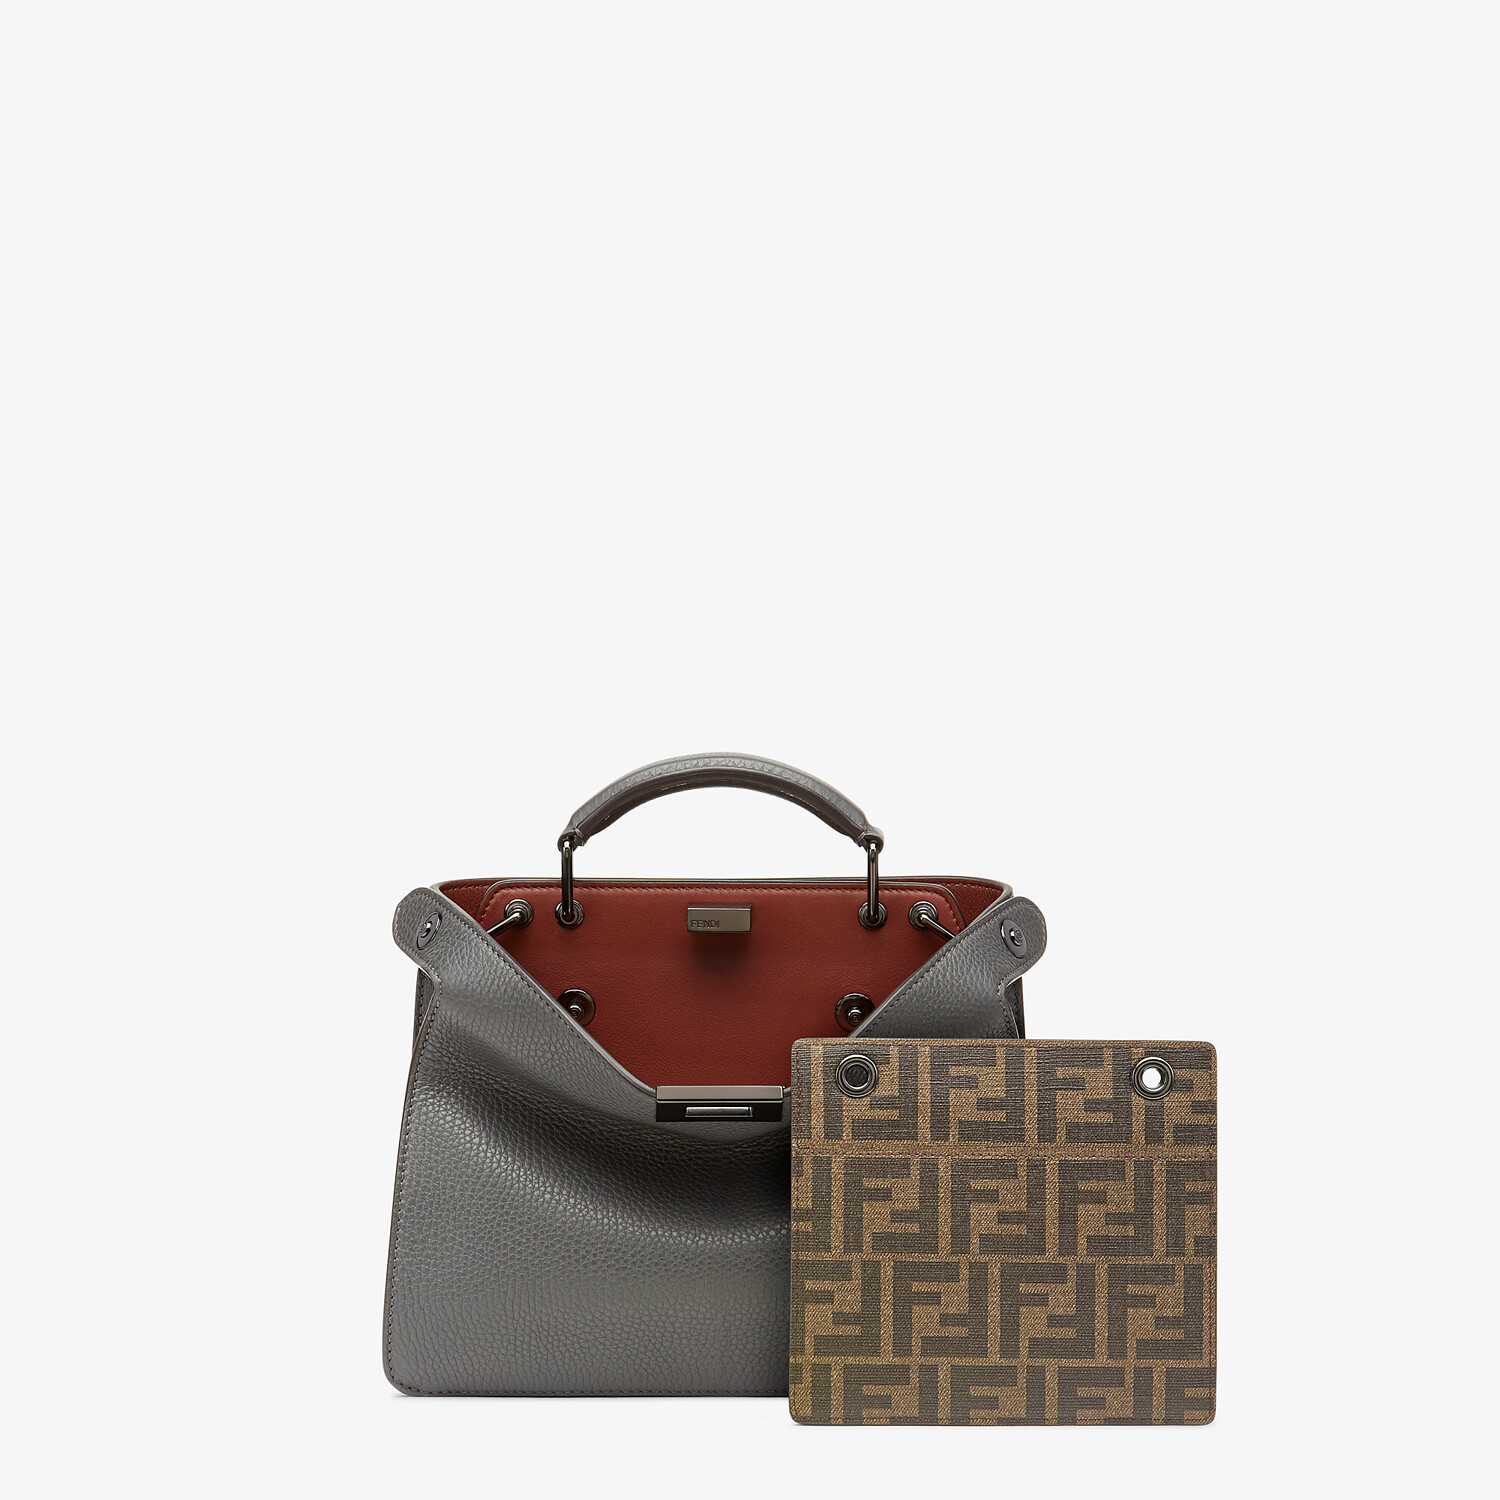 FENDI PEEKABOO ISEEU MINI - Gray leather bag - view 2 detail